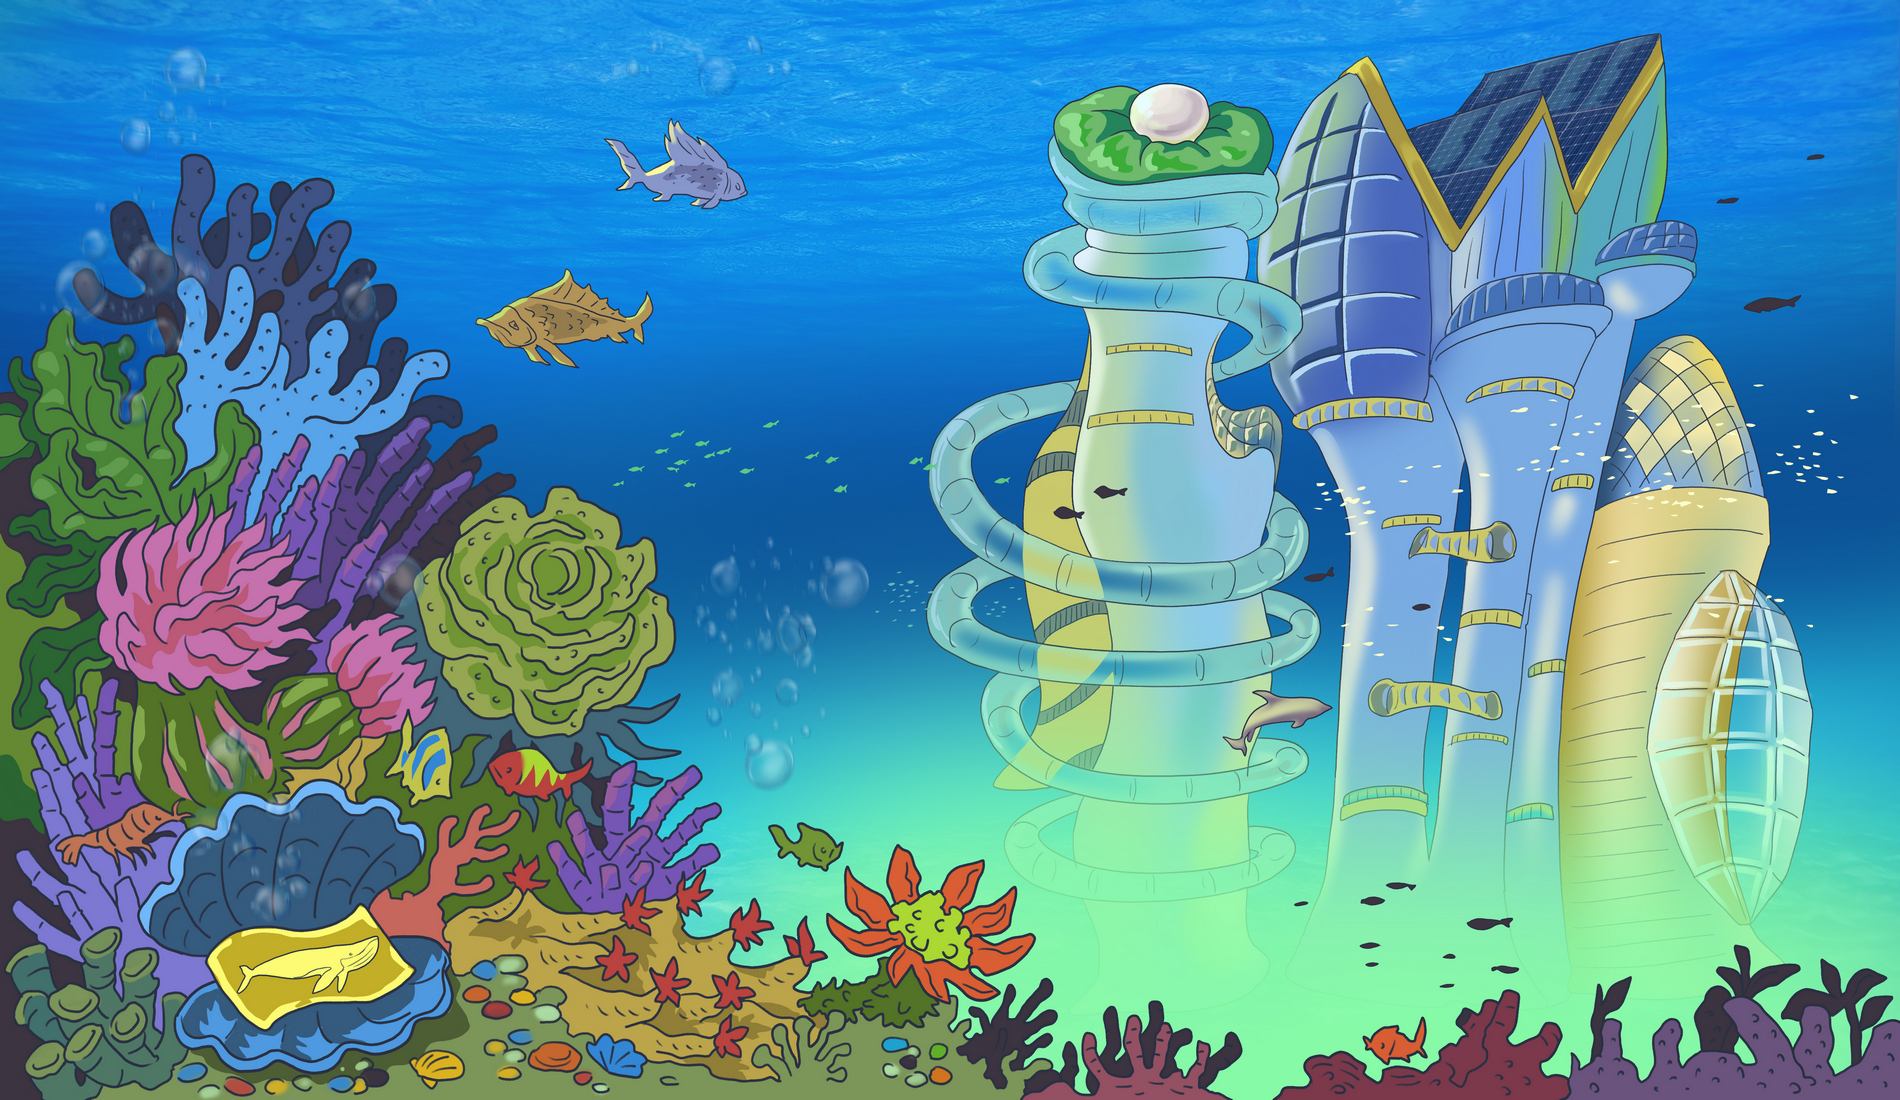 The city of Atlantis, home of the whales.